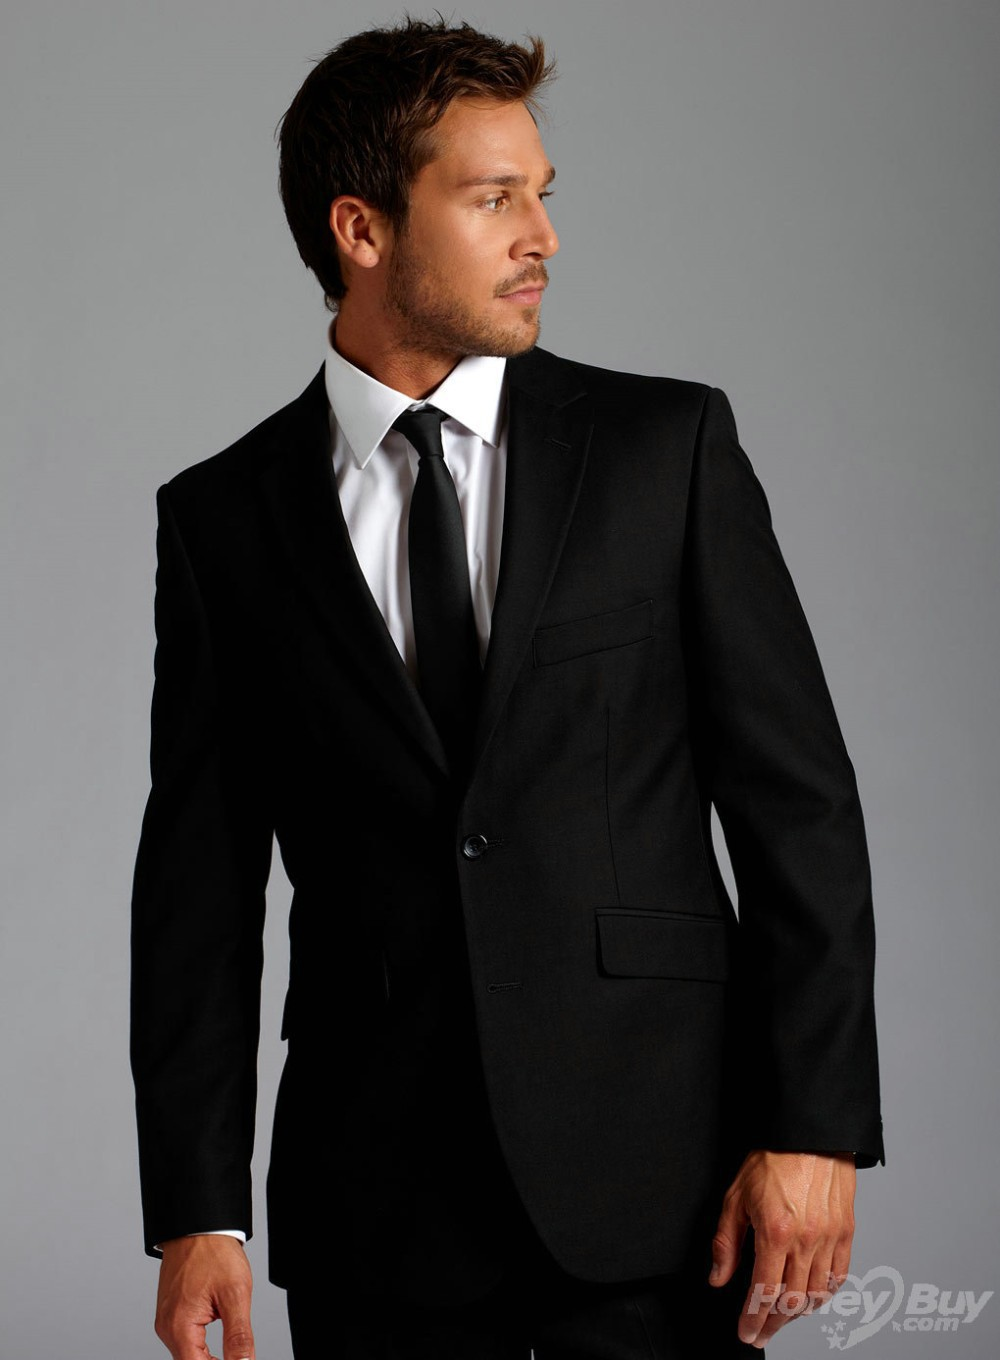 angrydog.ga has superb collection of black men in fashion suits, which can be worn for any occasion. Try our men's darkest black men in suits, made from super fine wool with 3 chic buttons. Try our men's darkest black men in suits, made from super fine wool with 3 chic buttons.